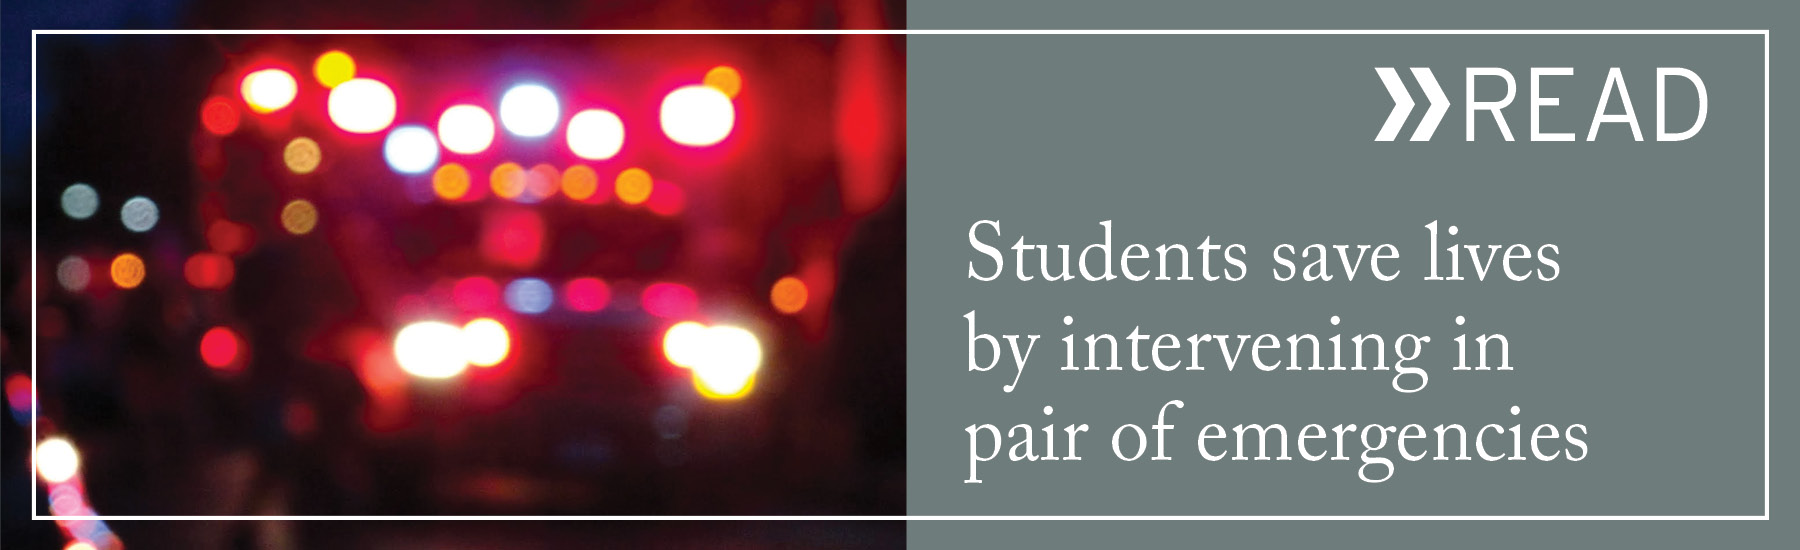 READ: Students save lives by intervening in pair of emergencies